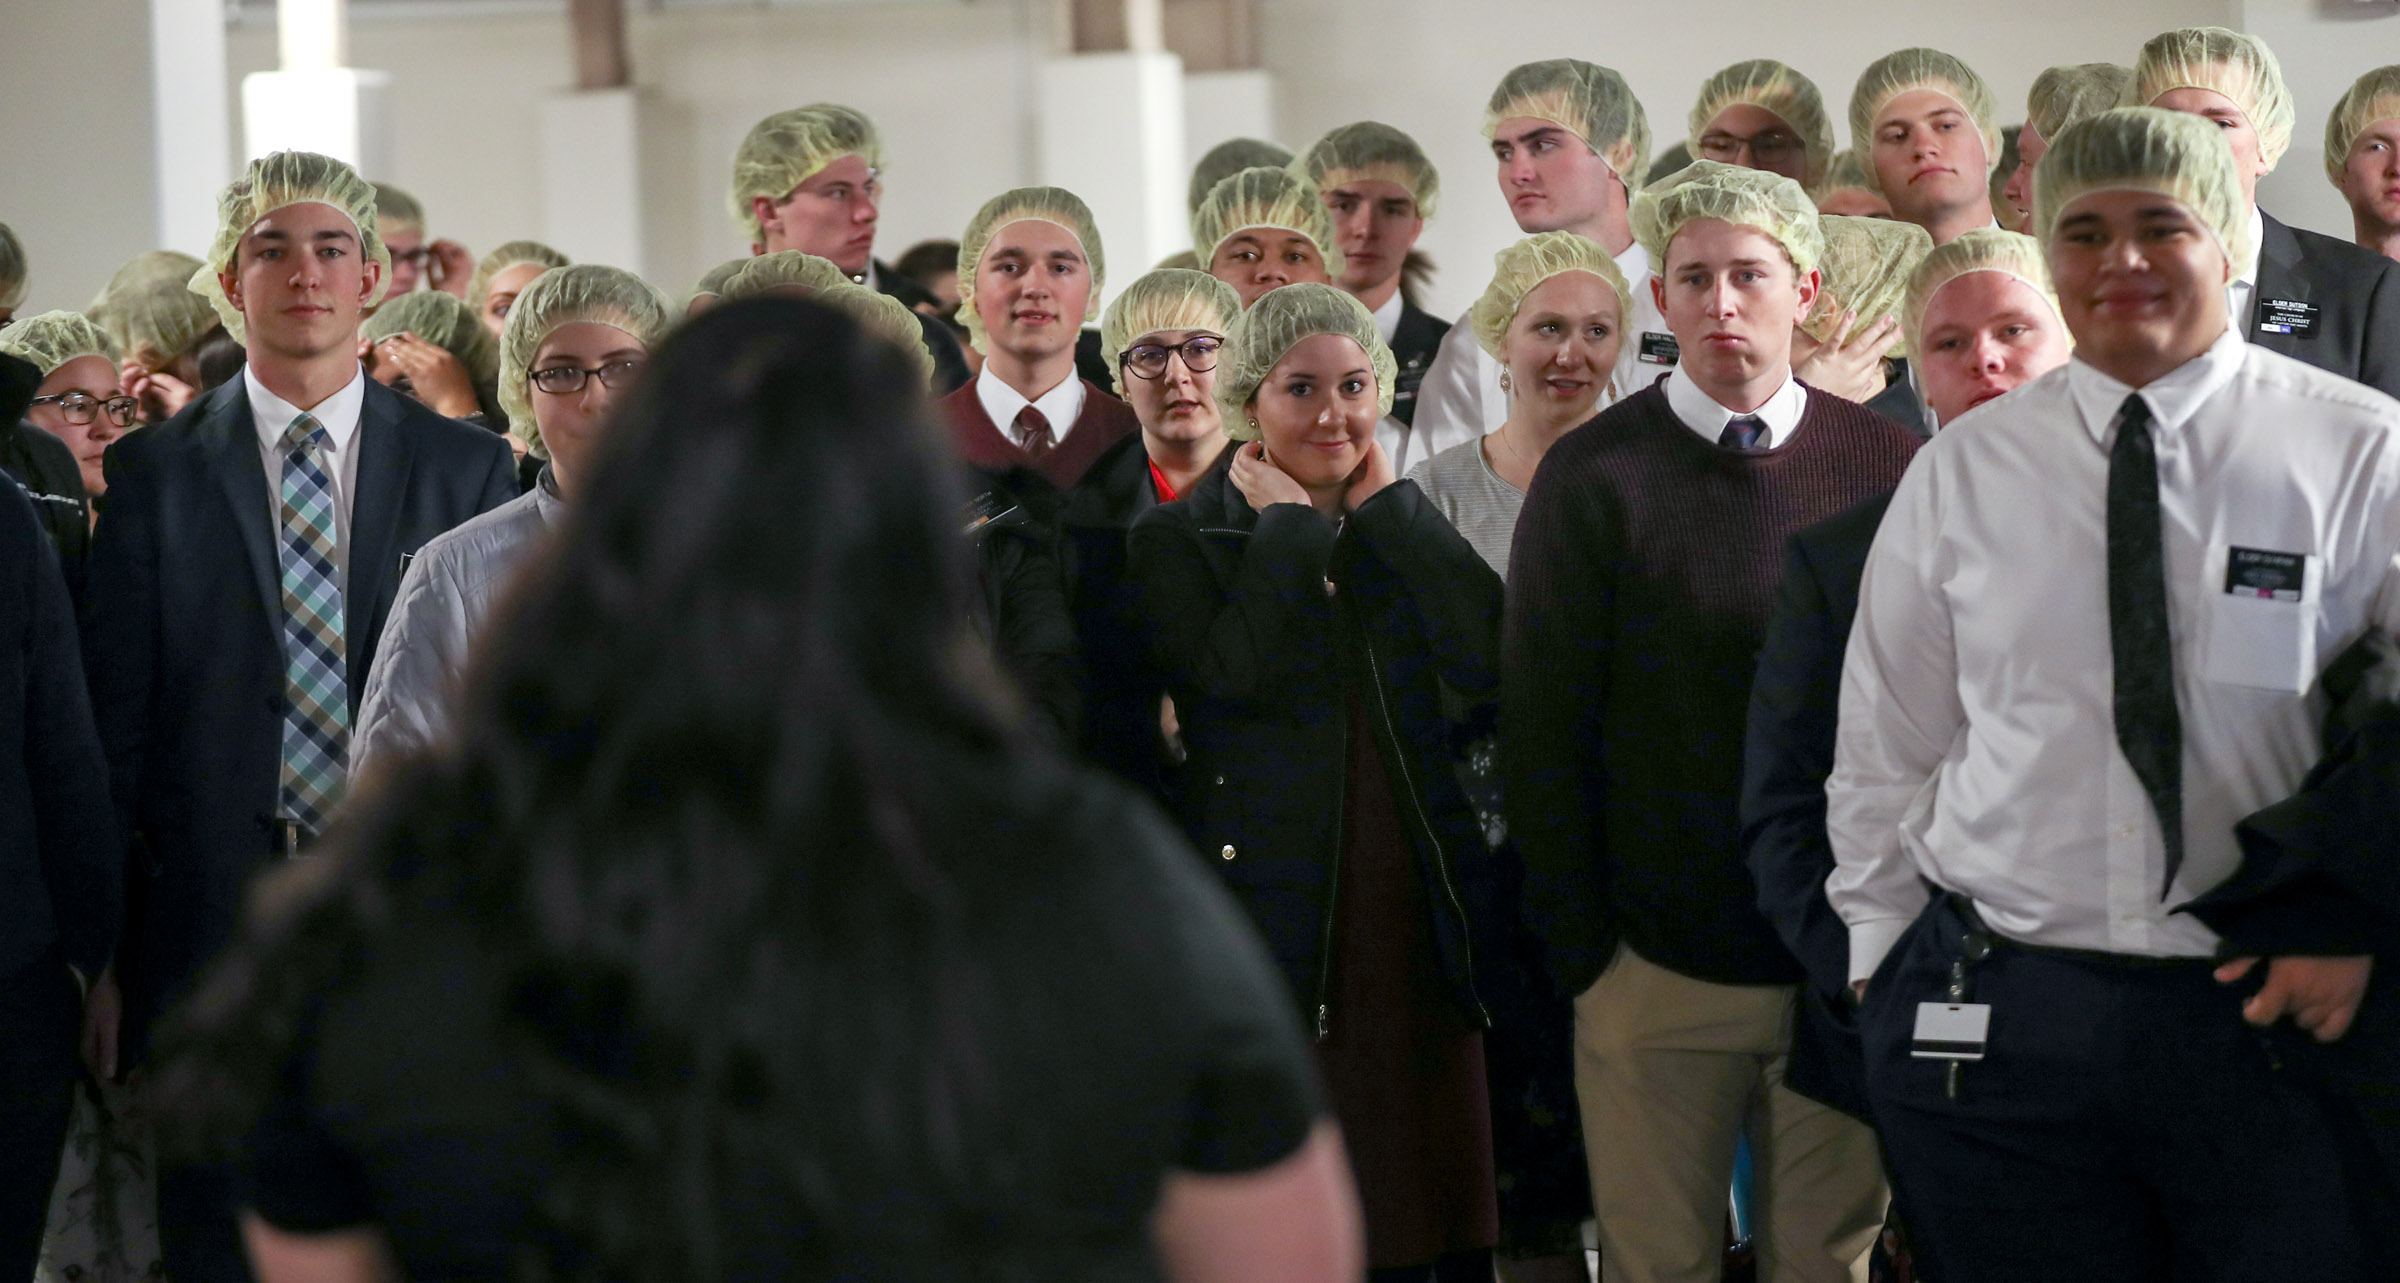 Missionaries serving at the Missionary Training Center in Provo get instructions as they participate in an annual service project with Feeding Children Everywhere to address the issue of domestic hunger. Working in a covered parking garage, the group assembled more than 350,000 meals for the Utah Food Bank on Thursday, Nov. 22, 2018.